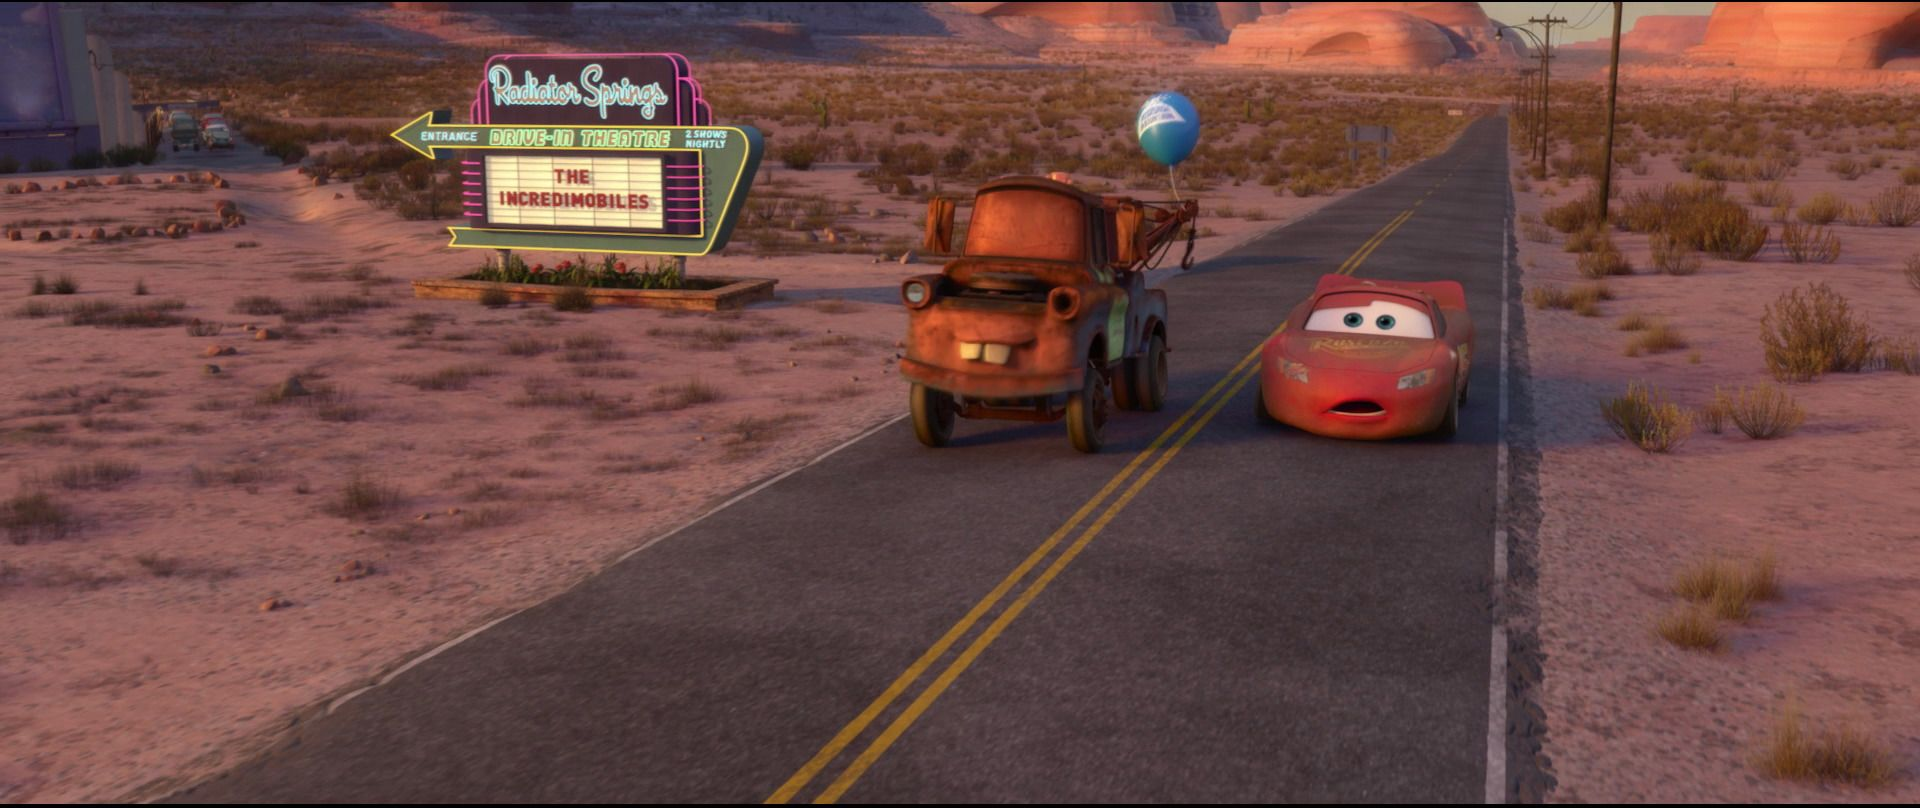 The Incredimobiles Radiator Springs Lightning Mcqueen Pixar